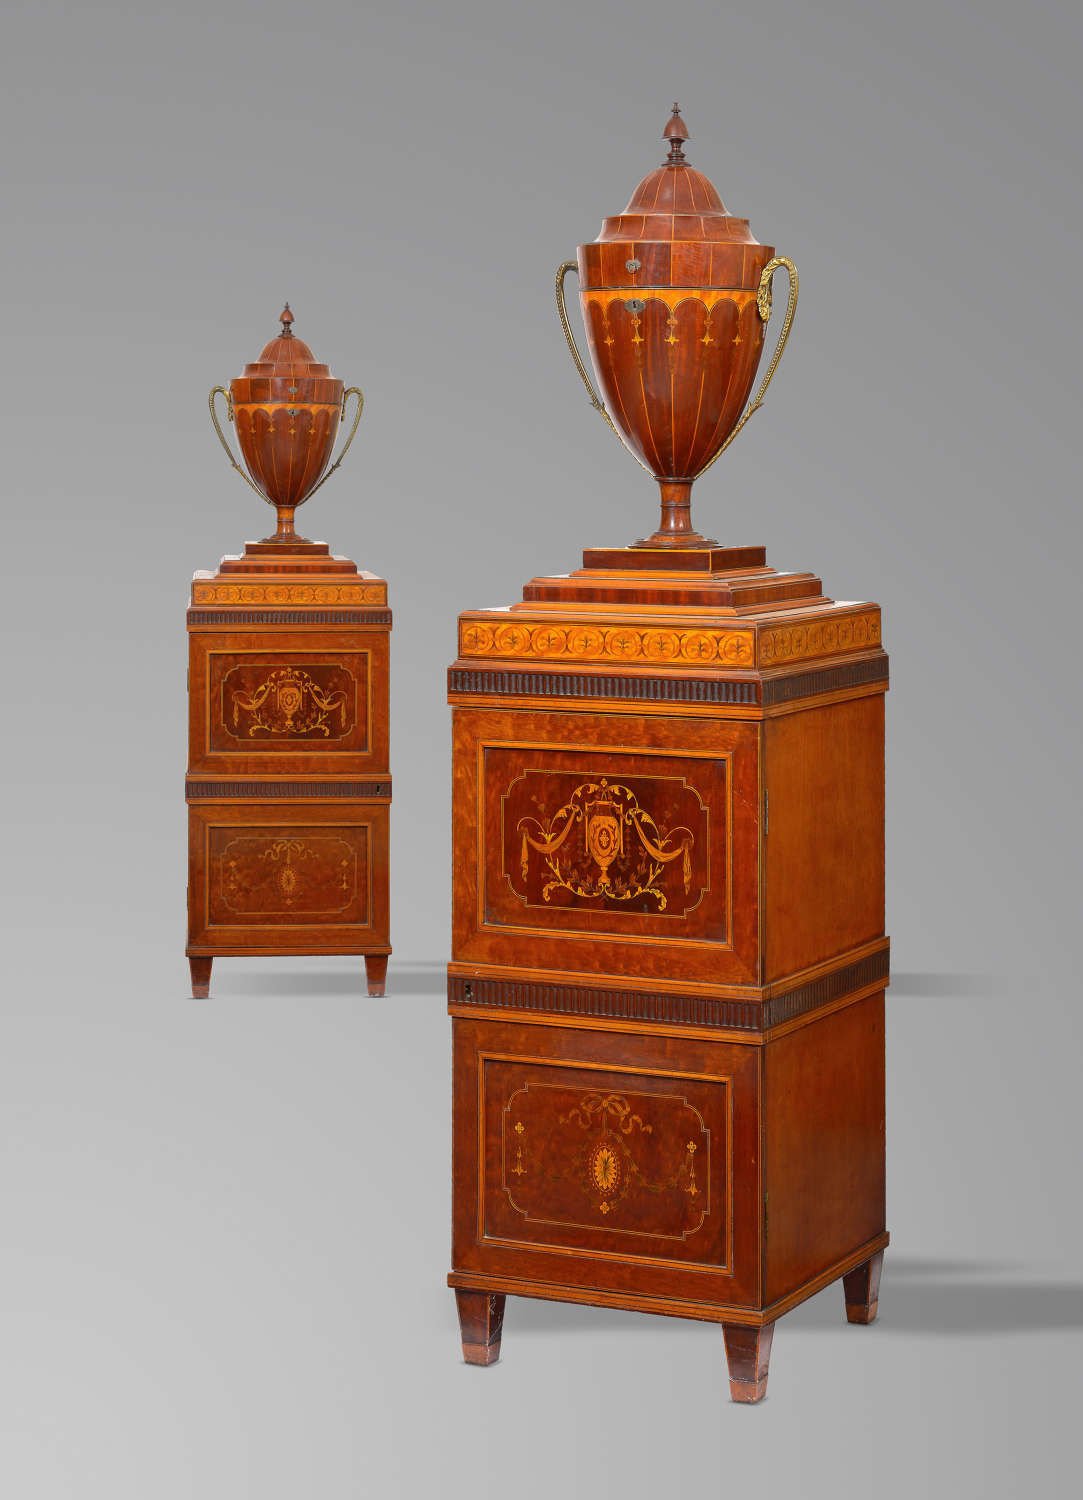 A Pair of George 111 Mahogany and satinwood cutlery Urns on pedestals